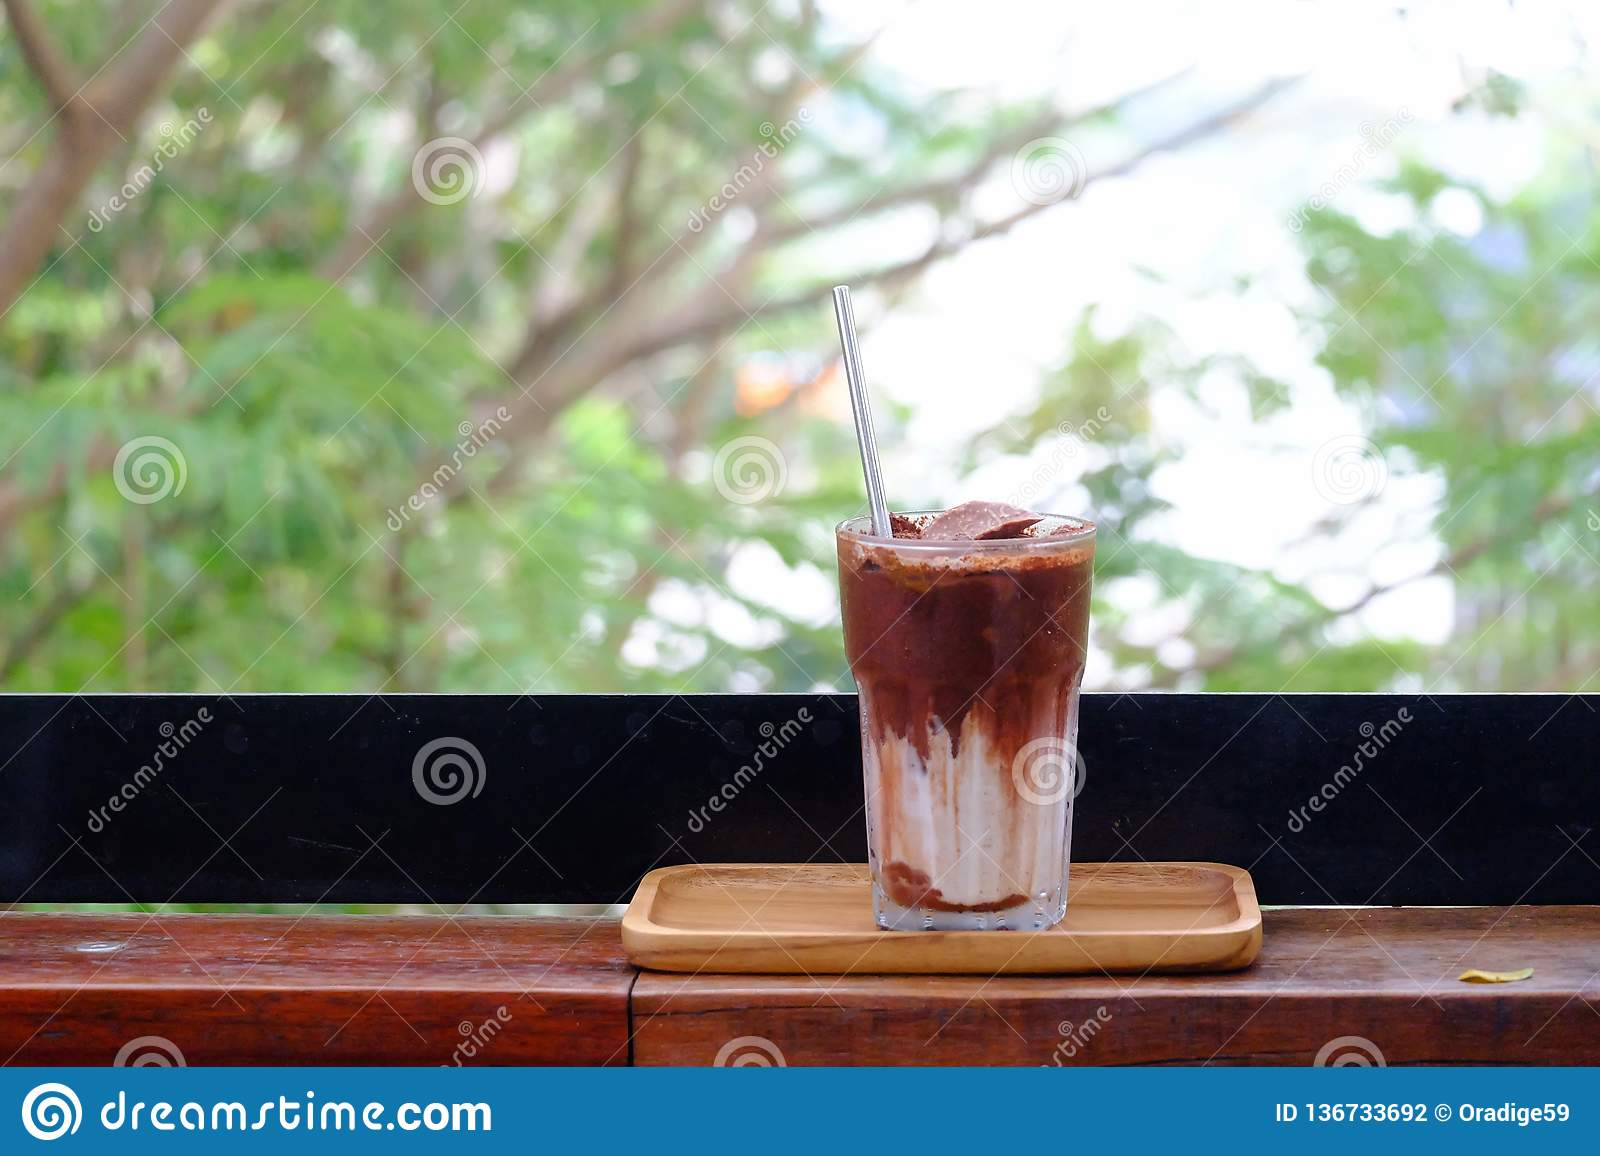 A glass of iced chocolate soft drinks with a steel straw in a wooden tray with an orange flower on wood balcony